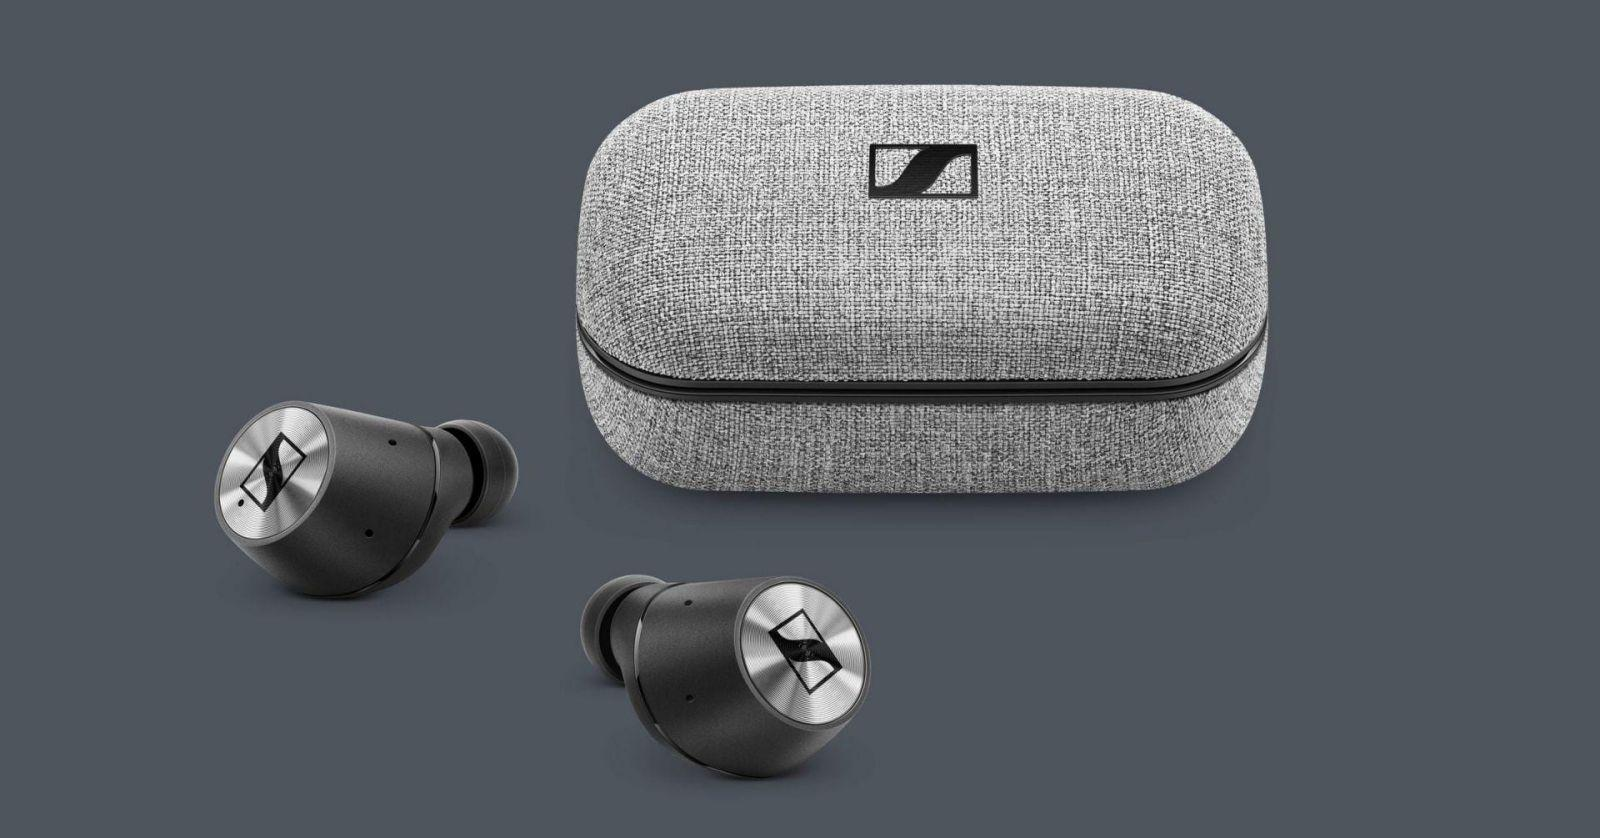 Sennheiser представила саундбар с технологией 3D-звучания и улучшенные наушники (sennheiser momentum true wireless case and buds source sennheiser)